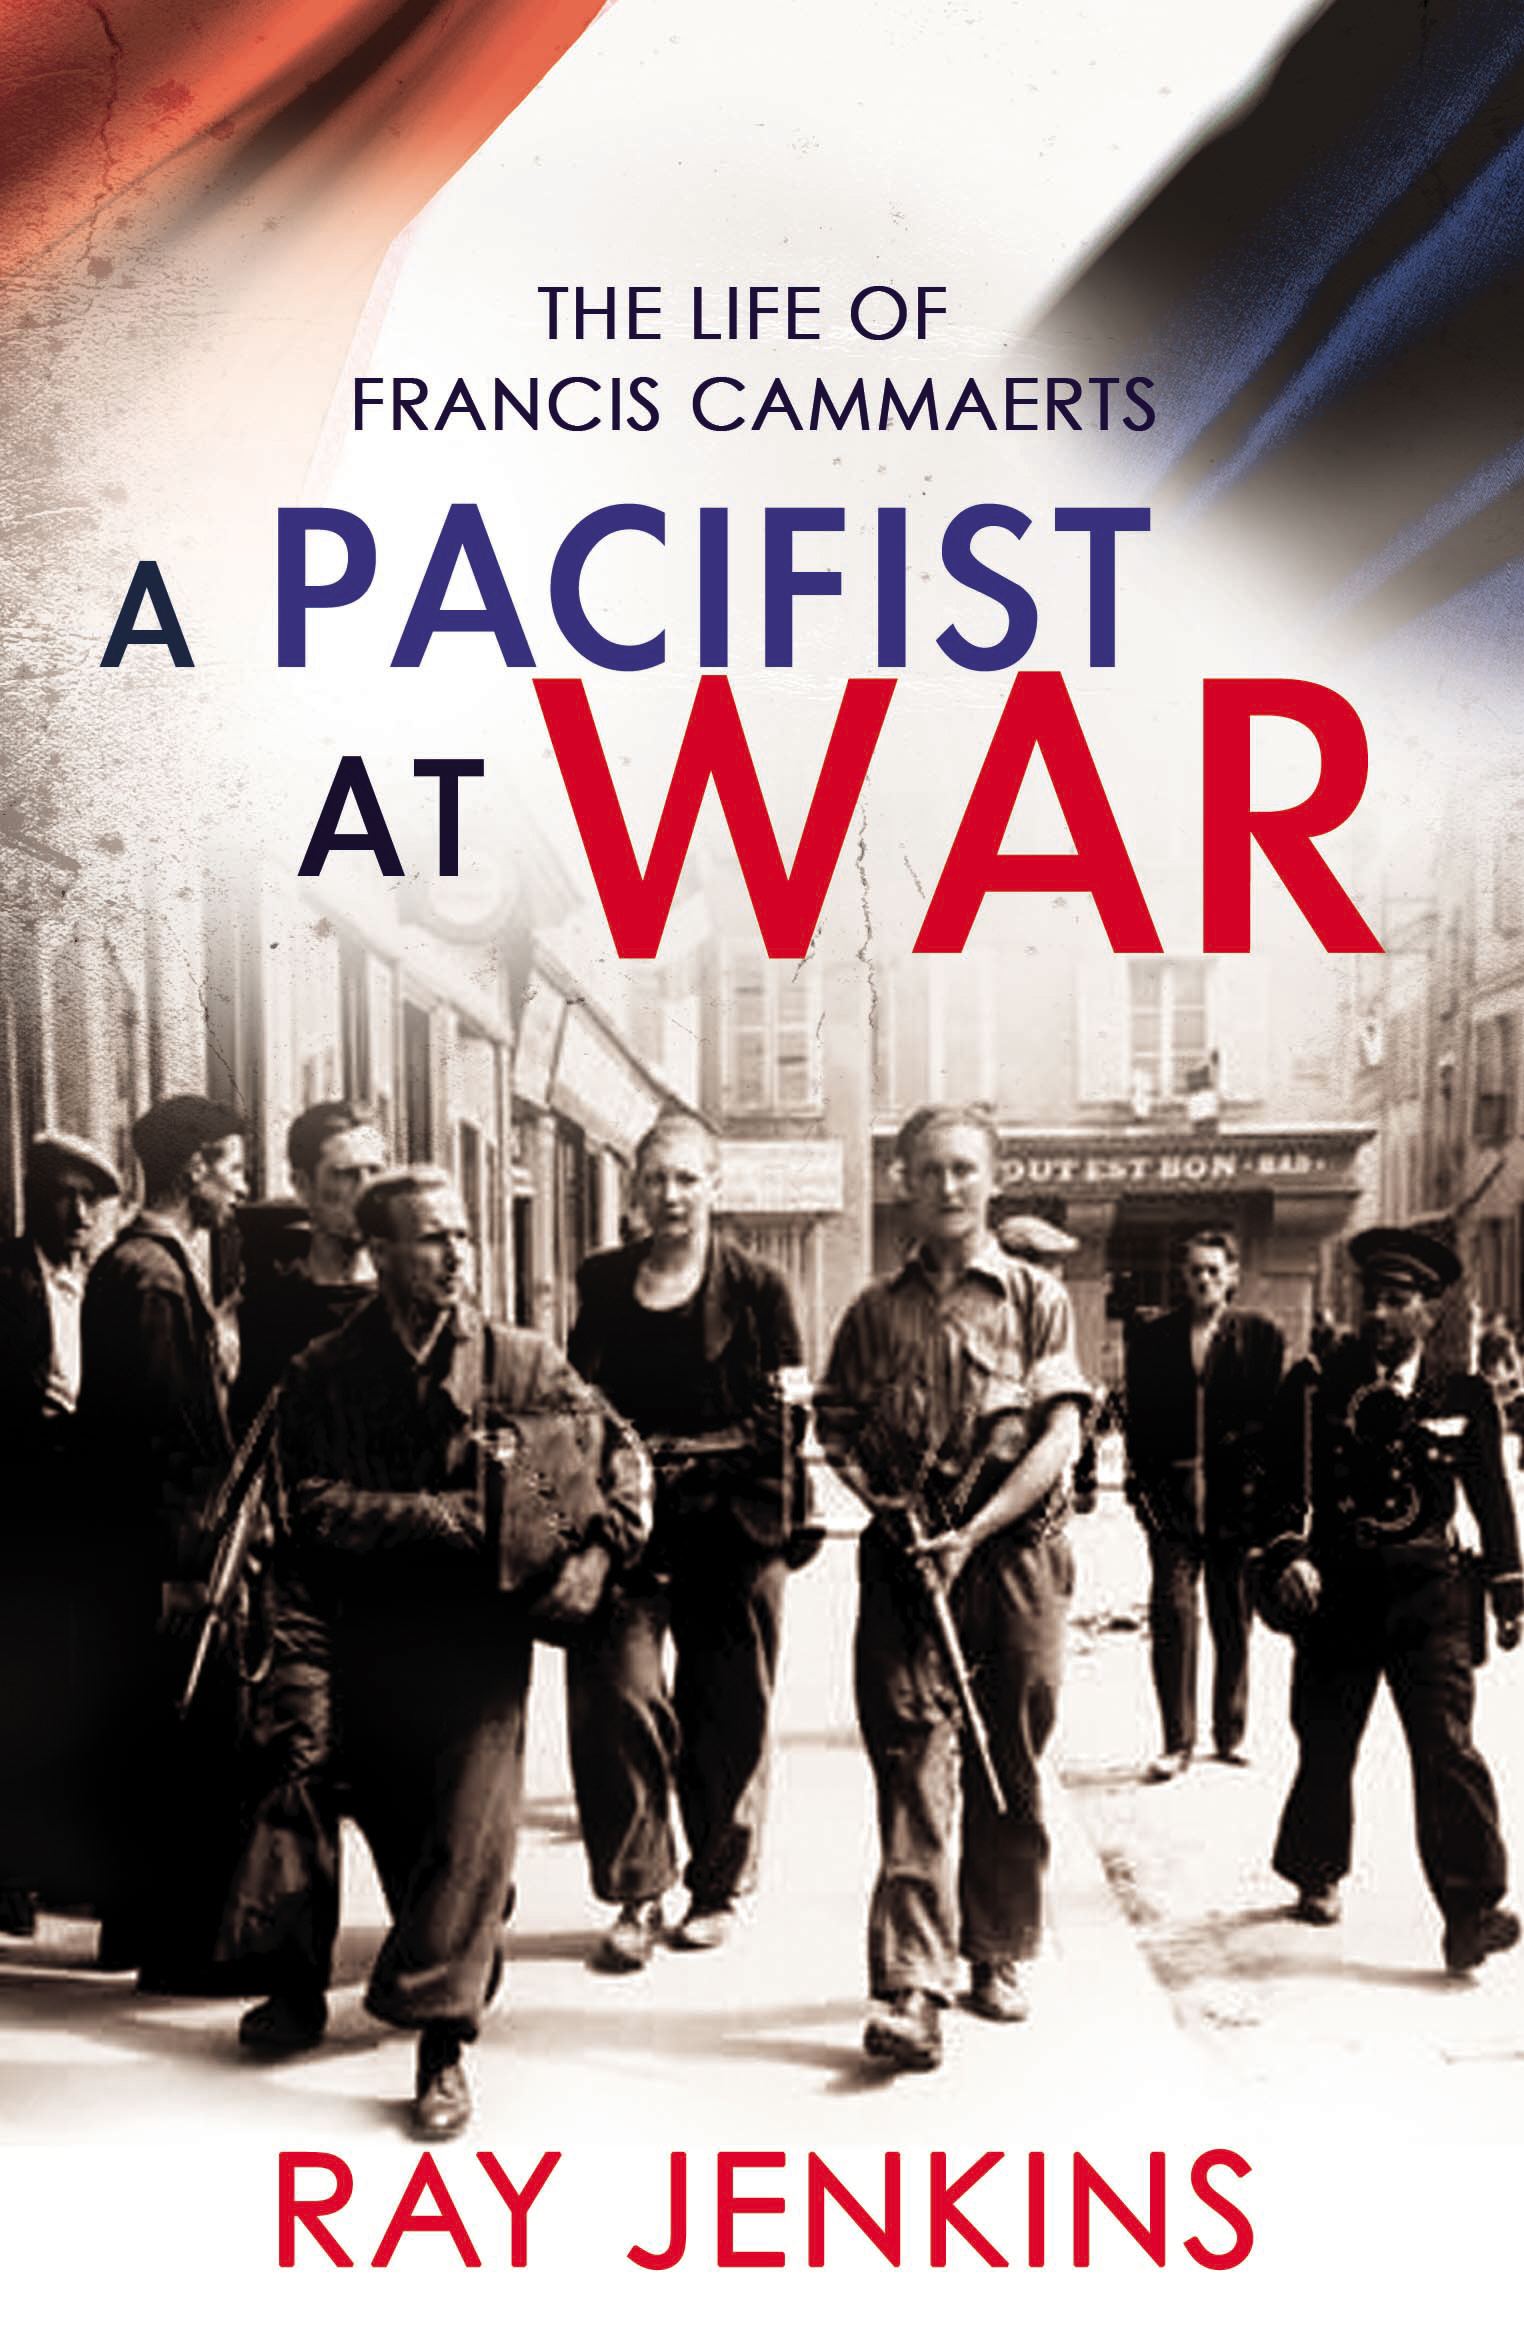 A Pacifist At War The Silence of Francis Cammaerts